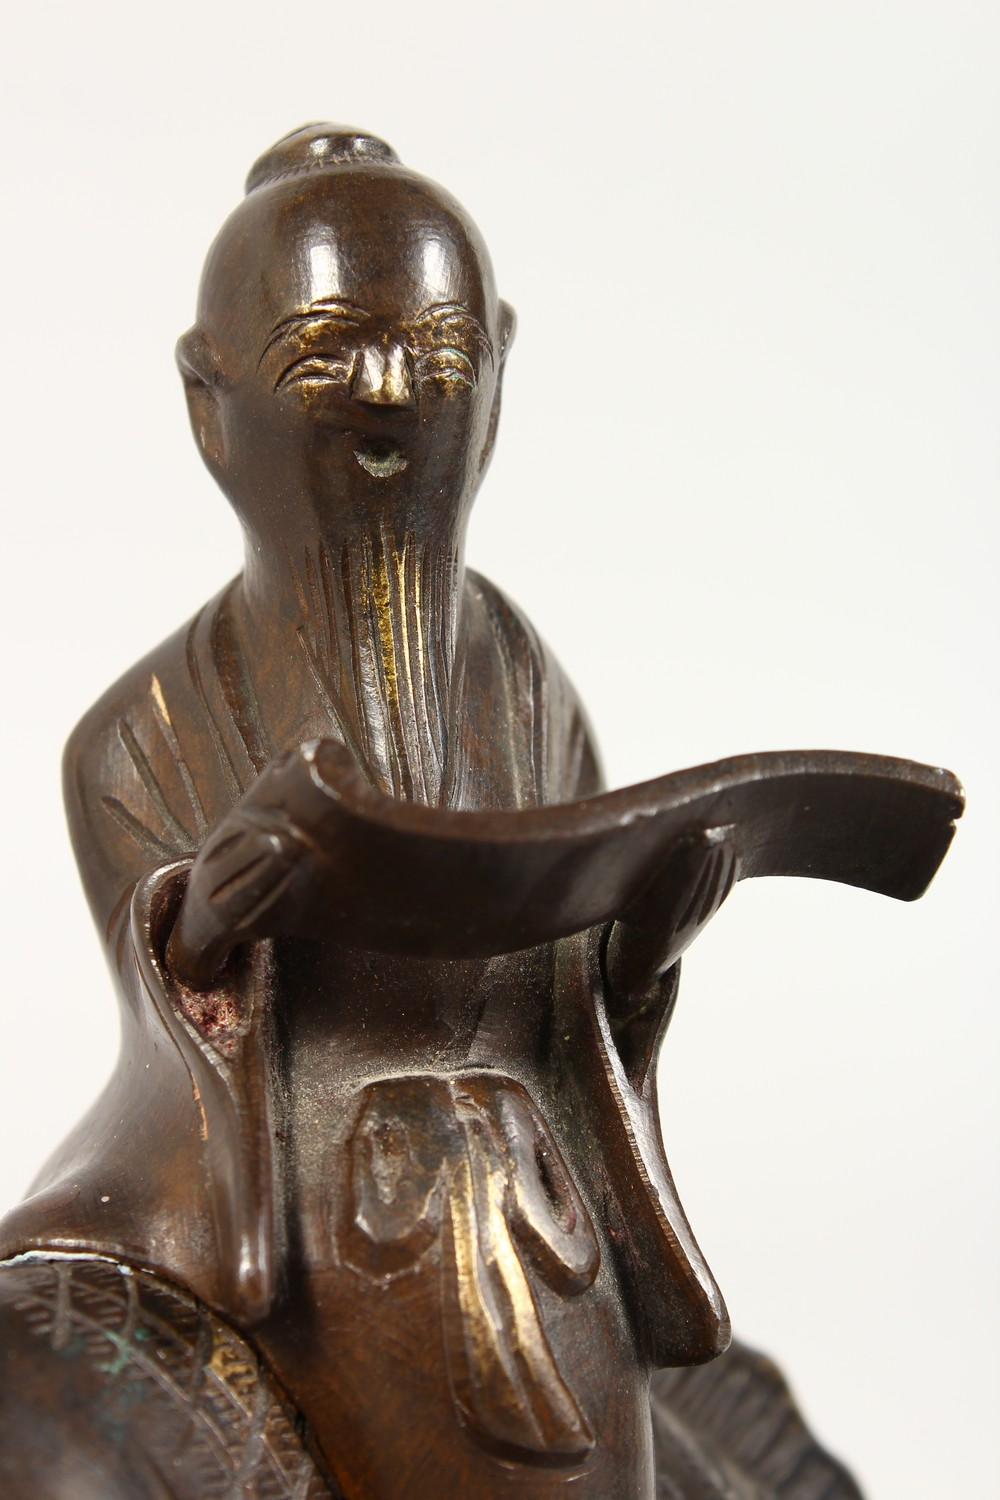 A GOOD JAPANESE MEIJI PERIOD BRONZE KORO OF EBISU - LUCKY GOD & FISH, the censer formed from the - Image 6 of 10